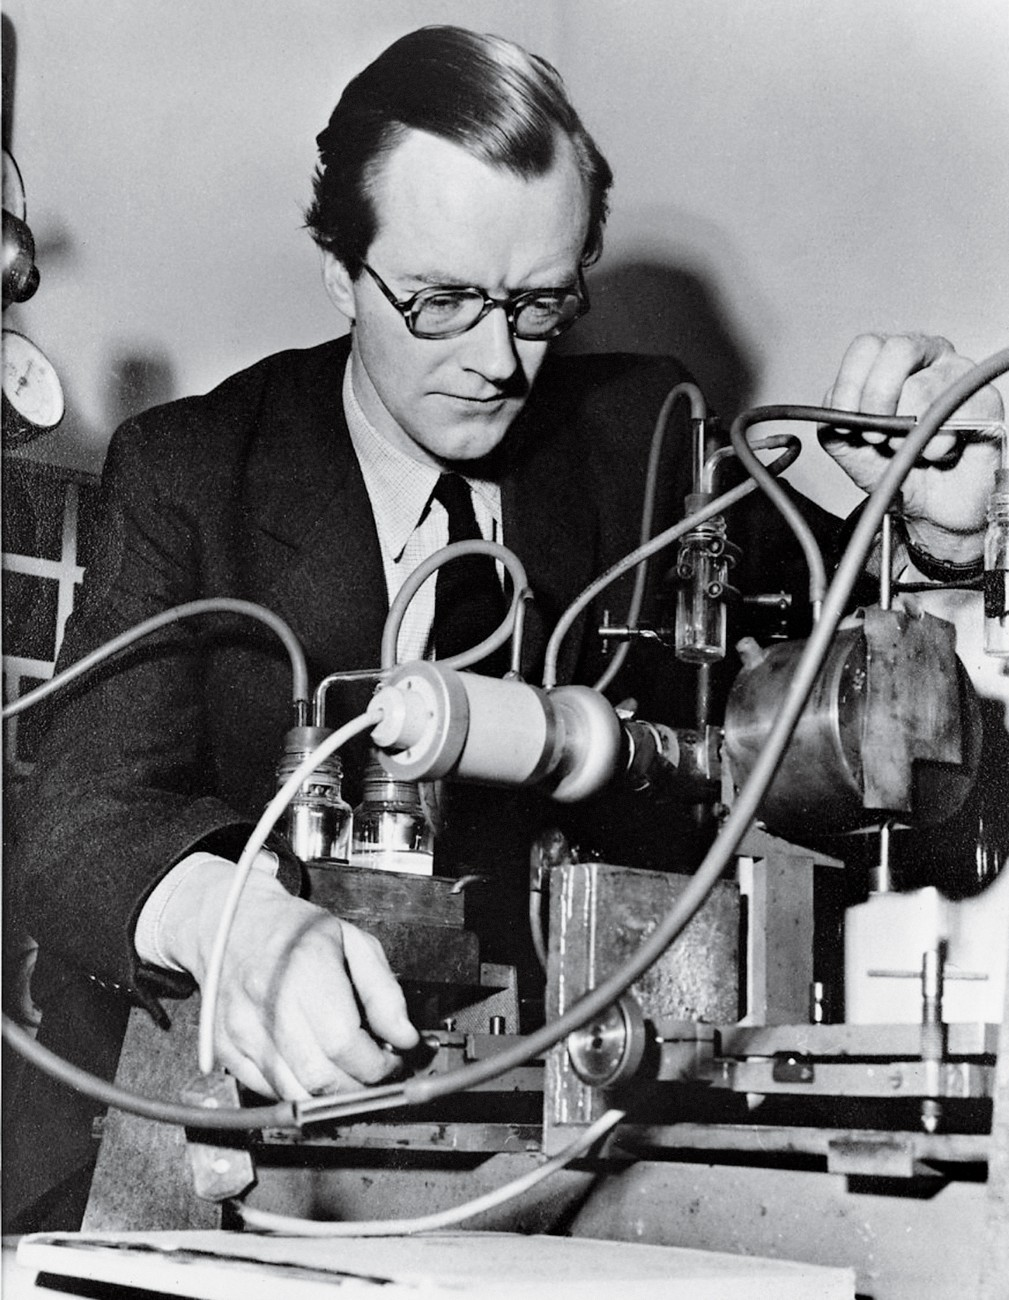 Here Wilkins adjusts an X-ray camera at King's College, London, in the mid 1950s. A piece of lead behind the cylindrical camera absorbs most X-rays while a few are scattered by the sample of DNA fibre—in a container in front of the camera—to produce an image on film. Exposures of five hours were needed to obtain such an image.